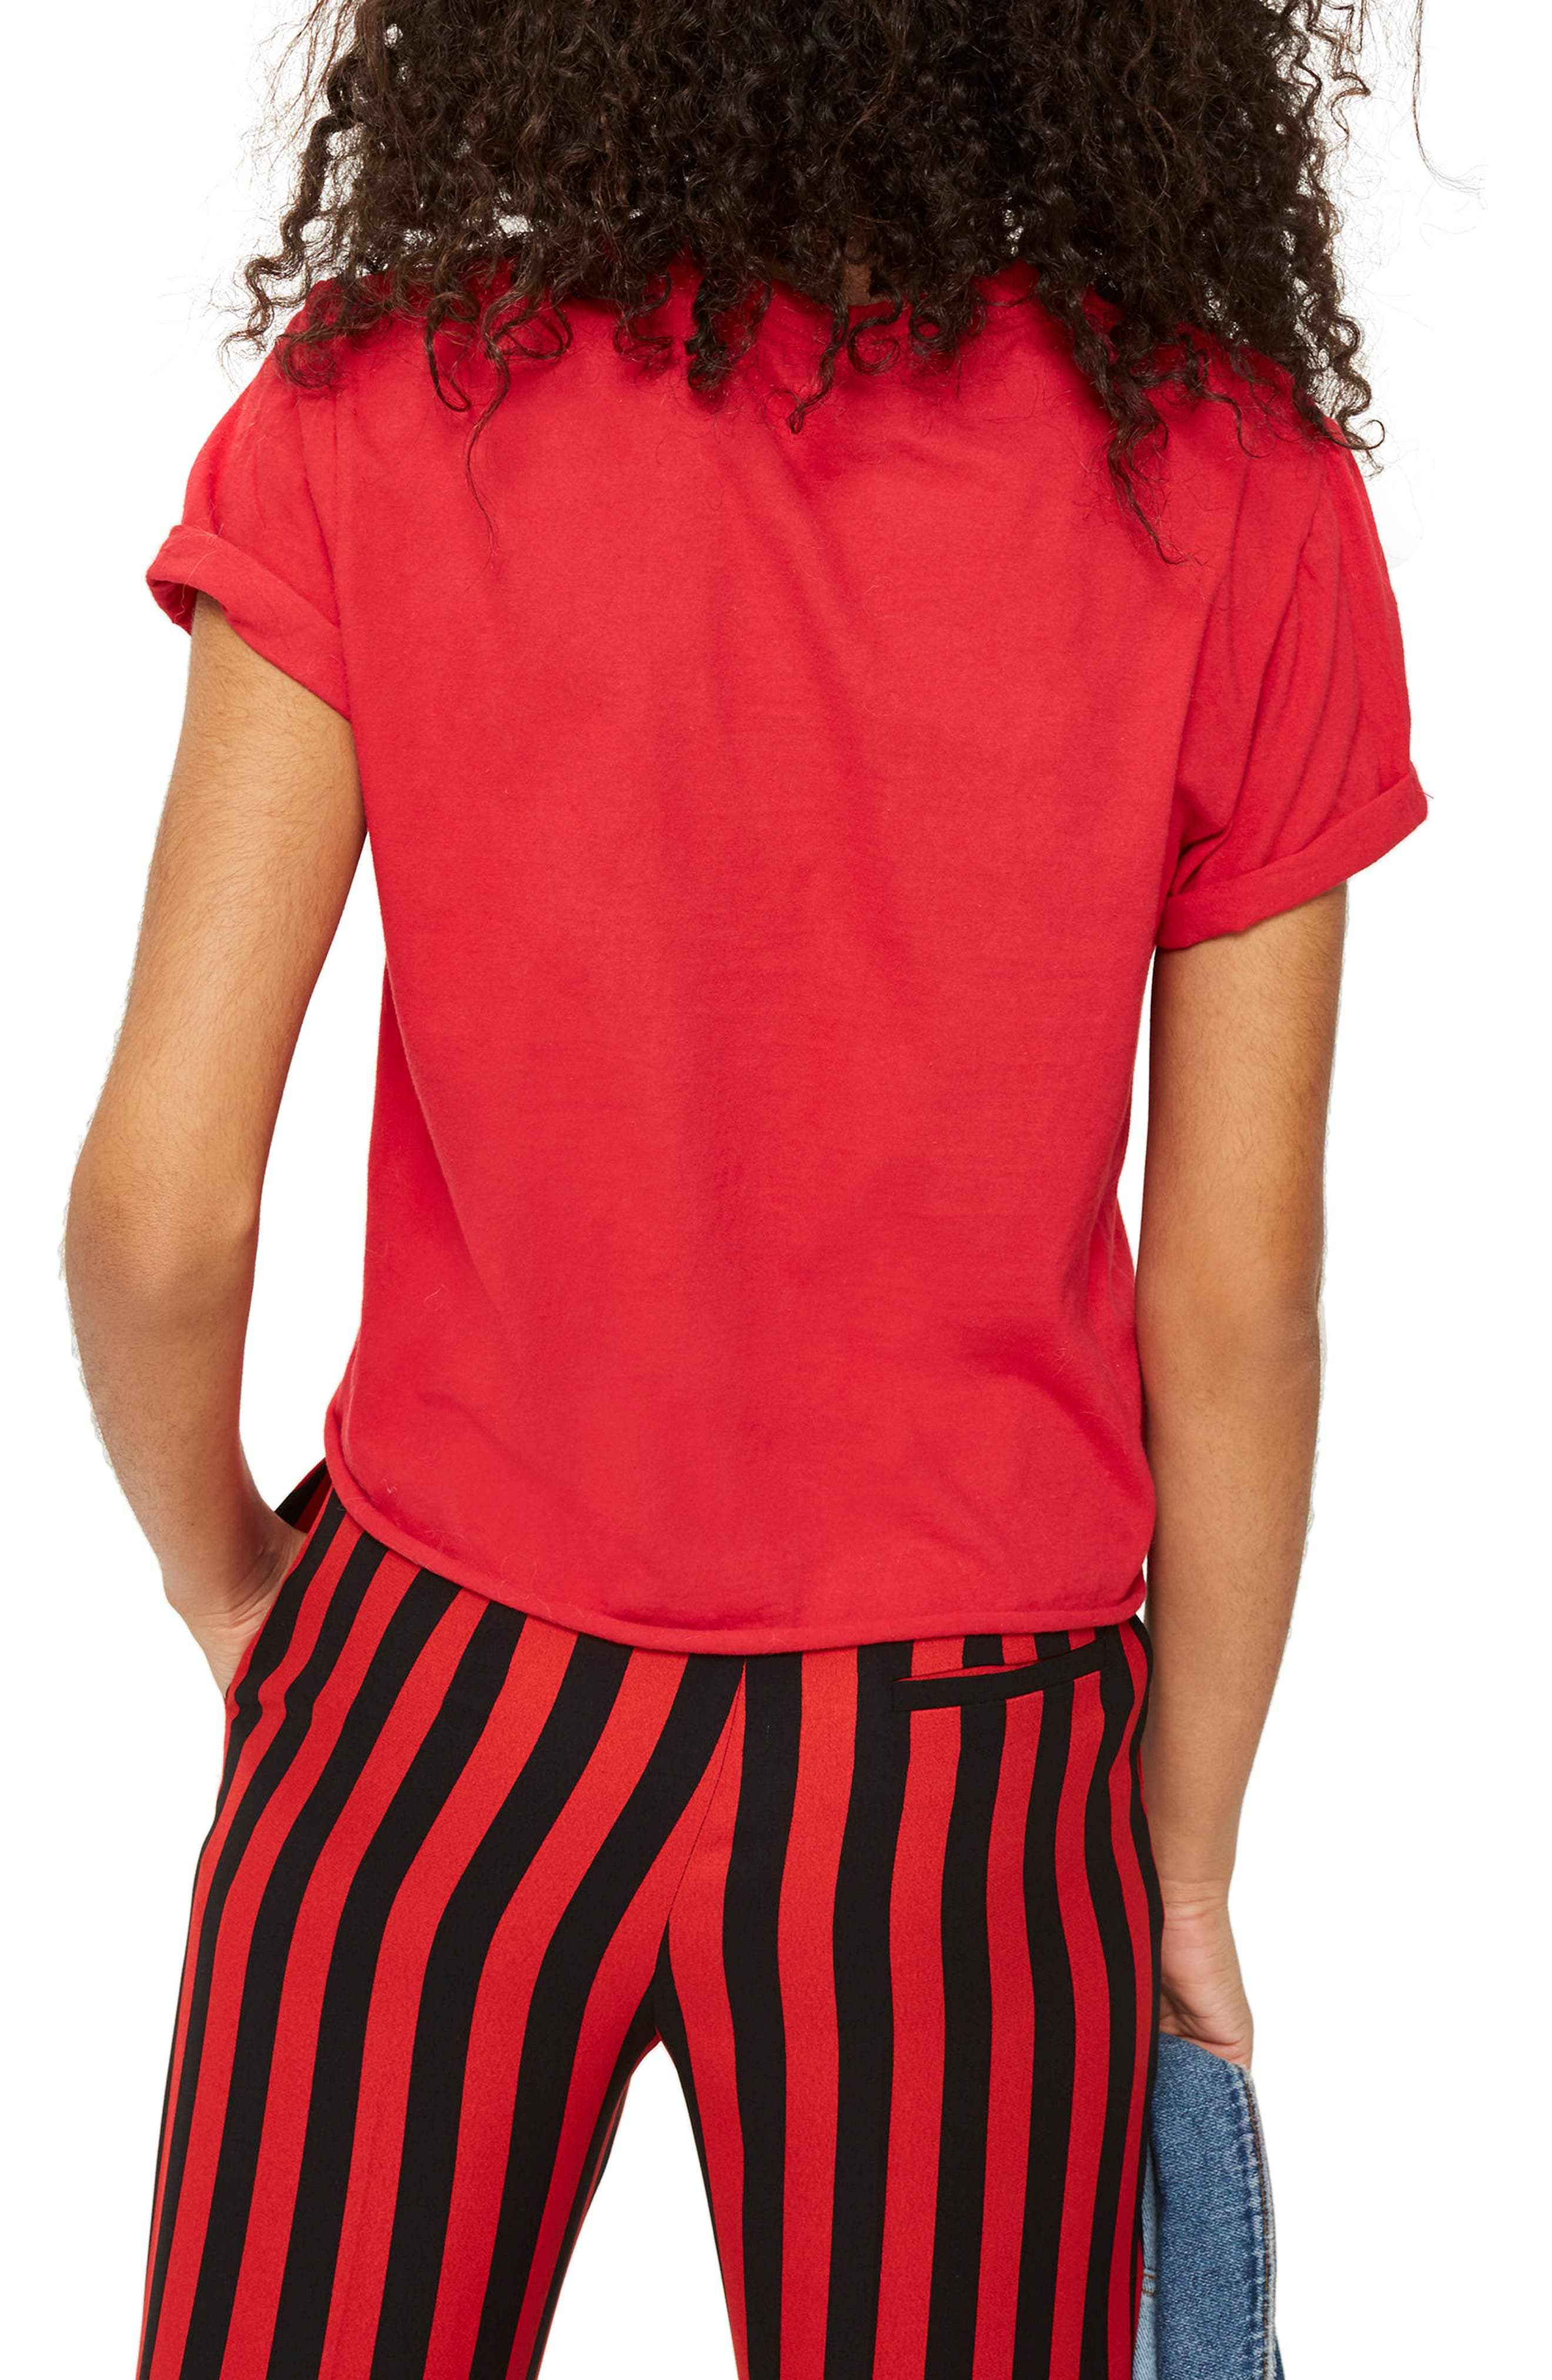 J'Adore Studded Crop T-Shirt,                             Alternate thumbnail 3, color,                             Red Multi